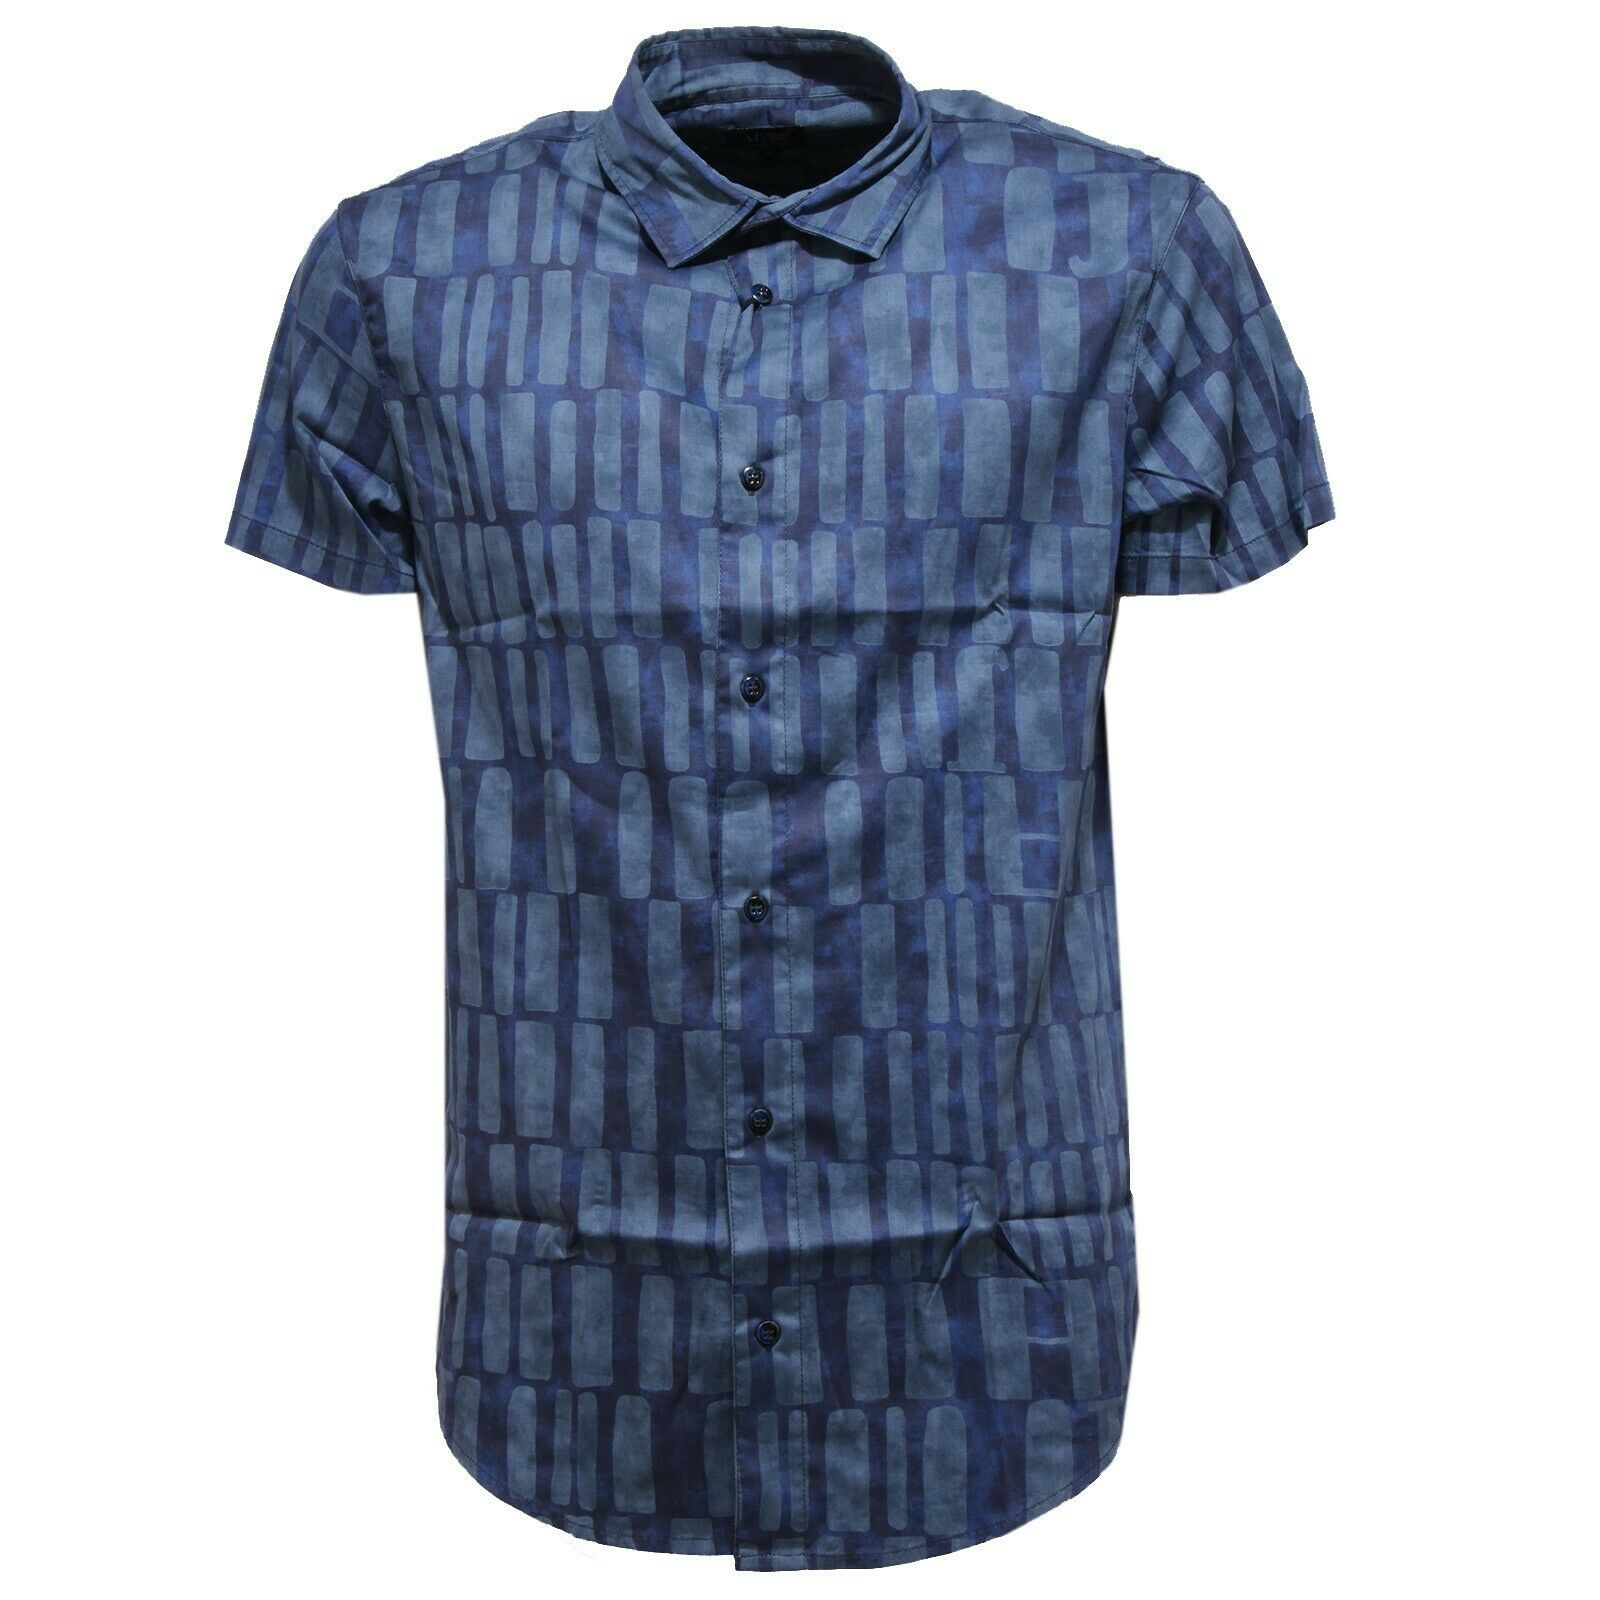 0294U camicia uomo slim fit  ARMANI JEANS blu shirt short sleeve cotton men